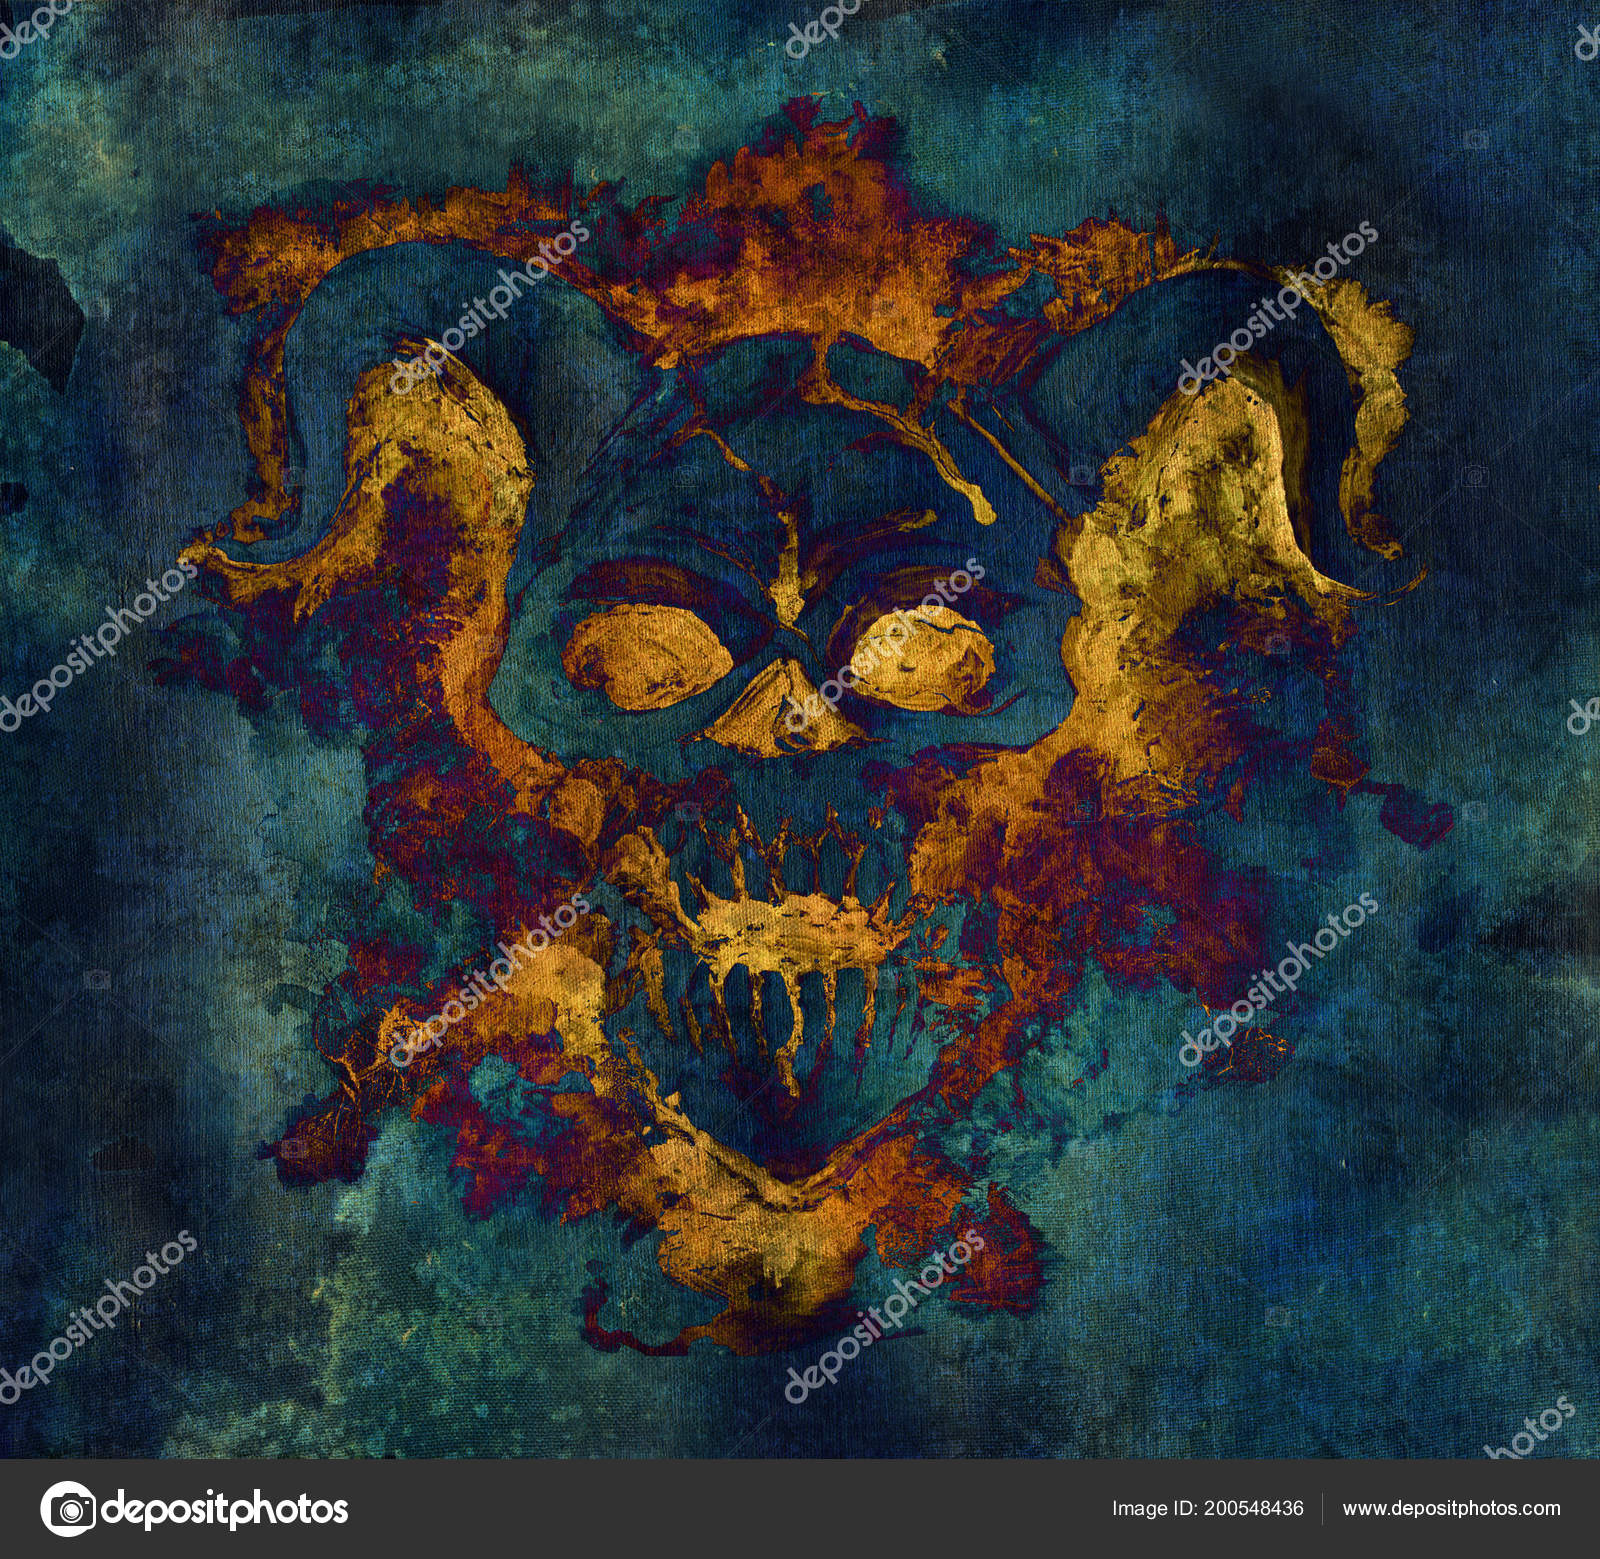 Demon Face Flame Hell Texture Background Death Symbol Black Magic